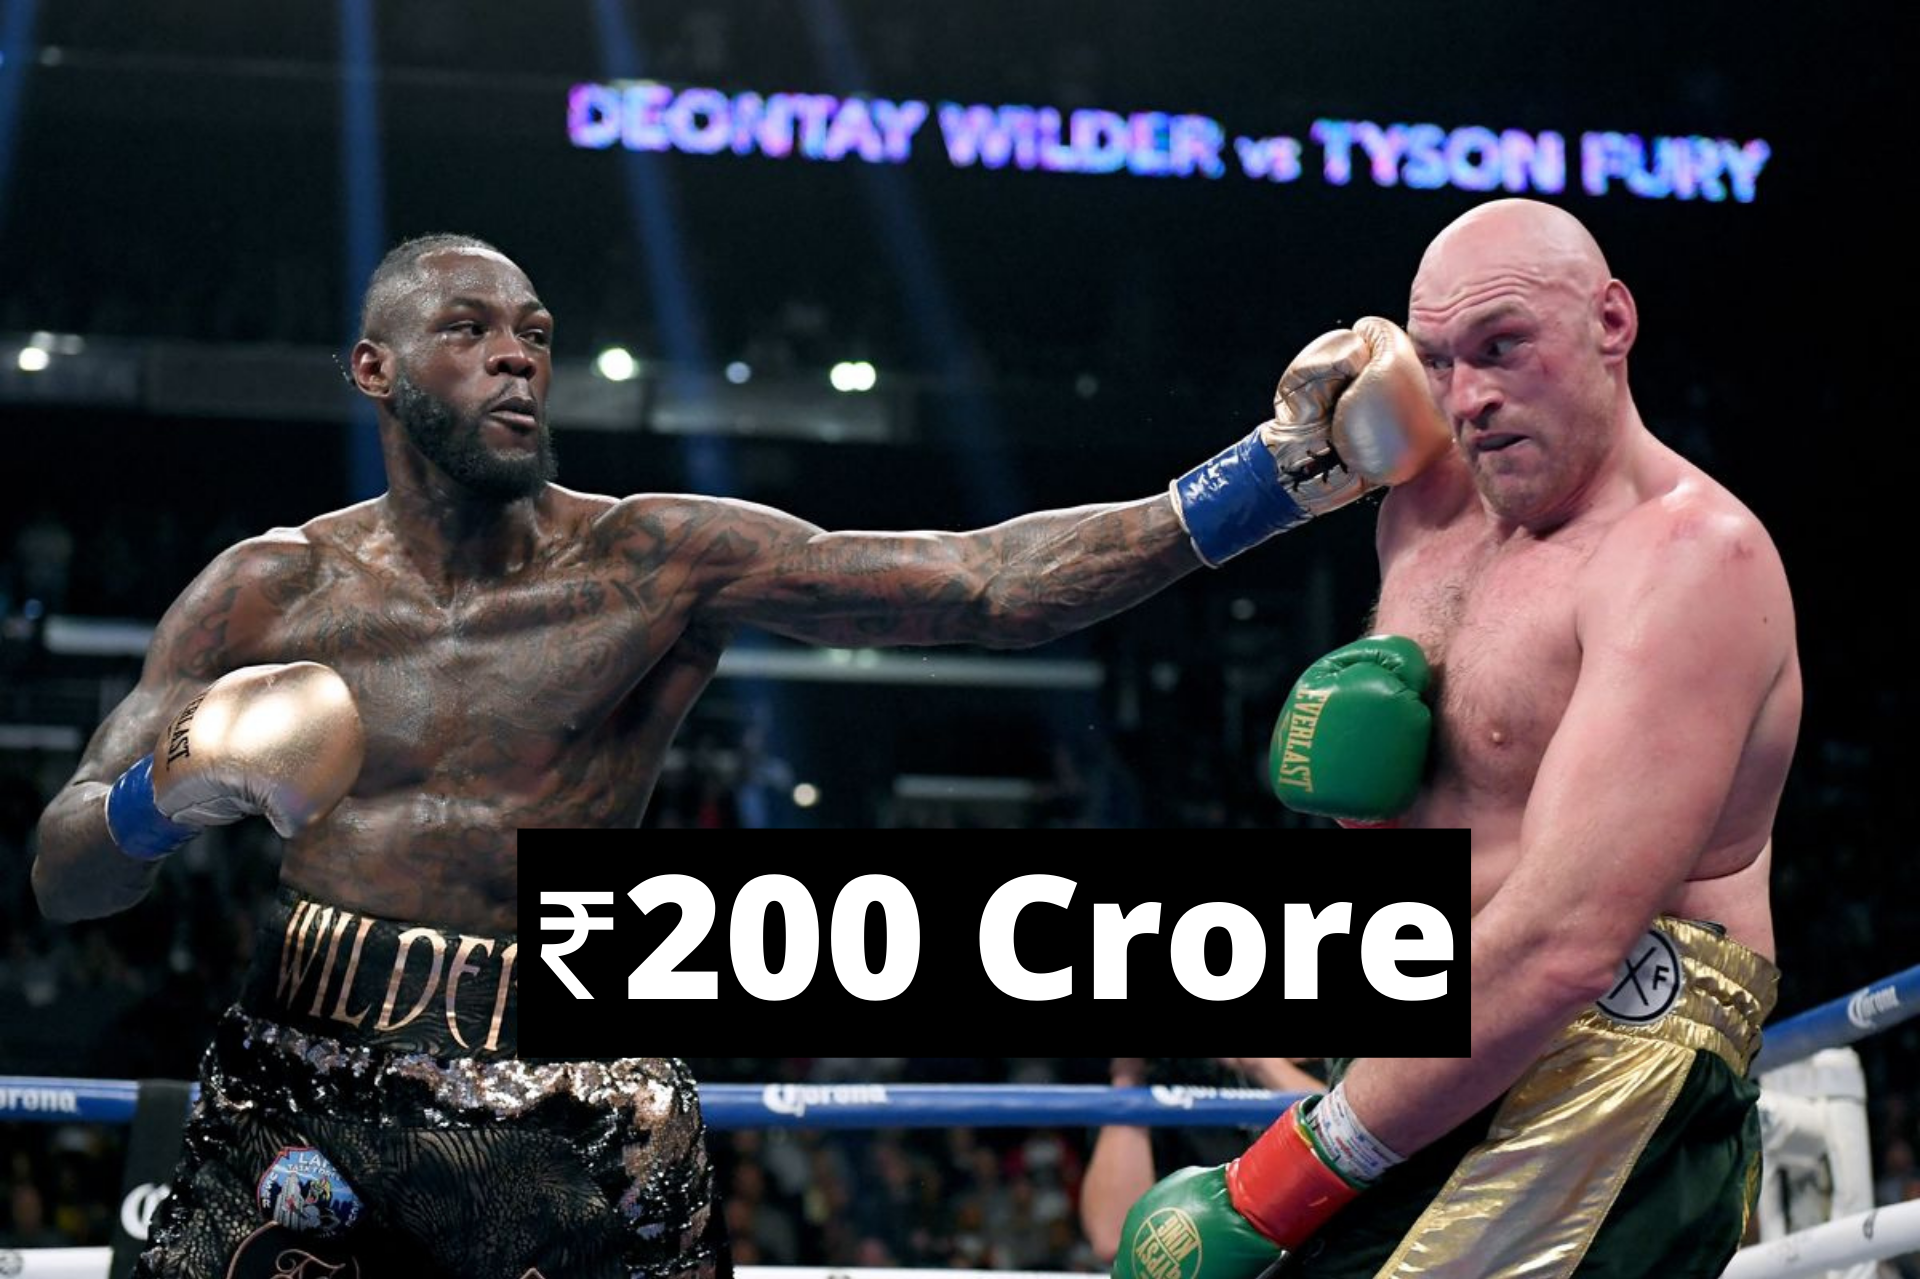 Deontay Wilder and Tyson Fury to make ₹200 Crore for the rematch - Tyson Fury